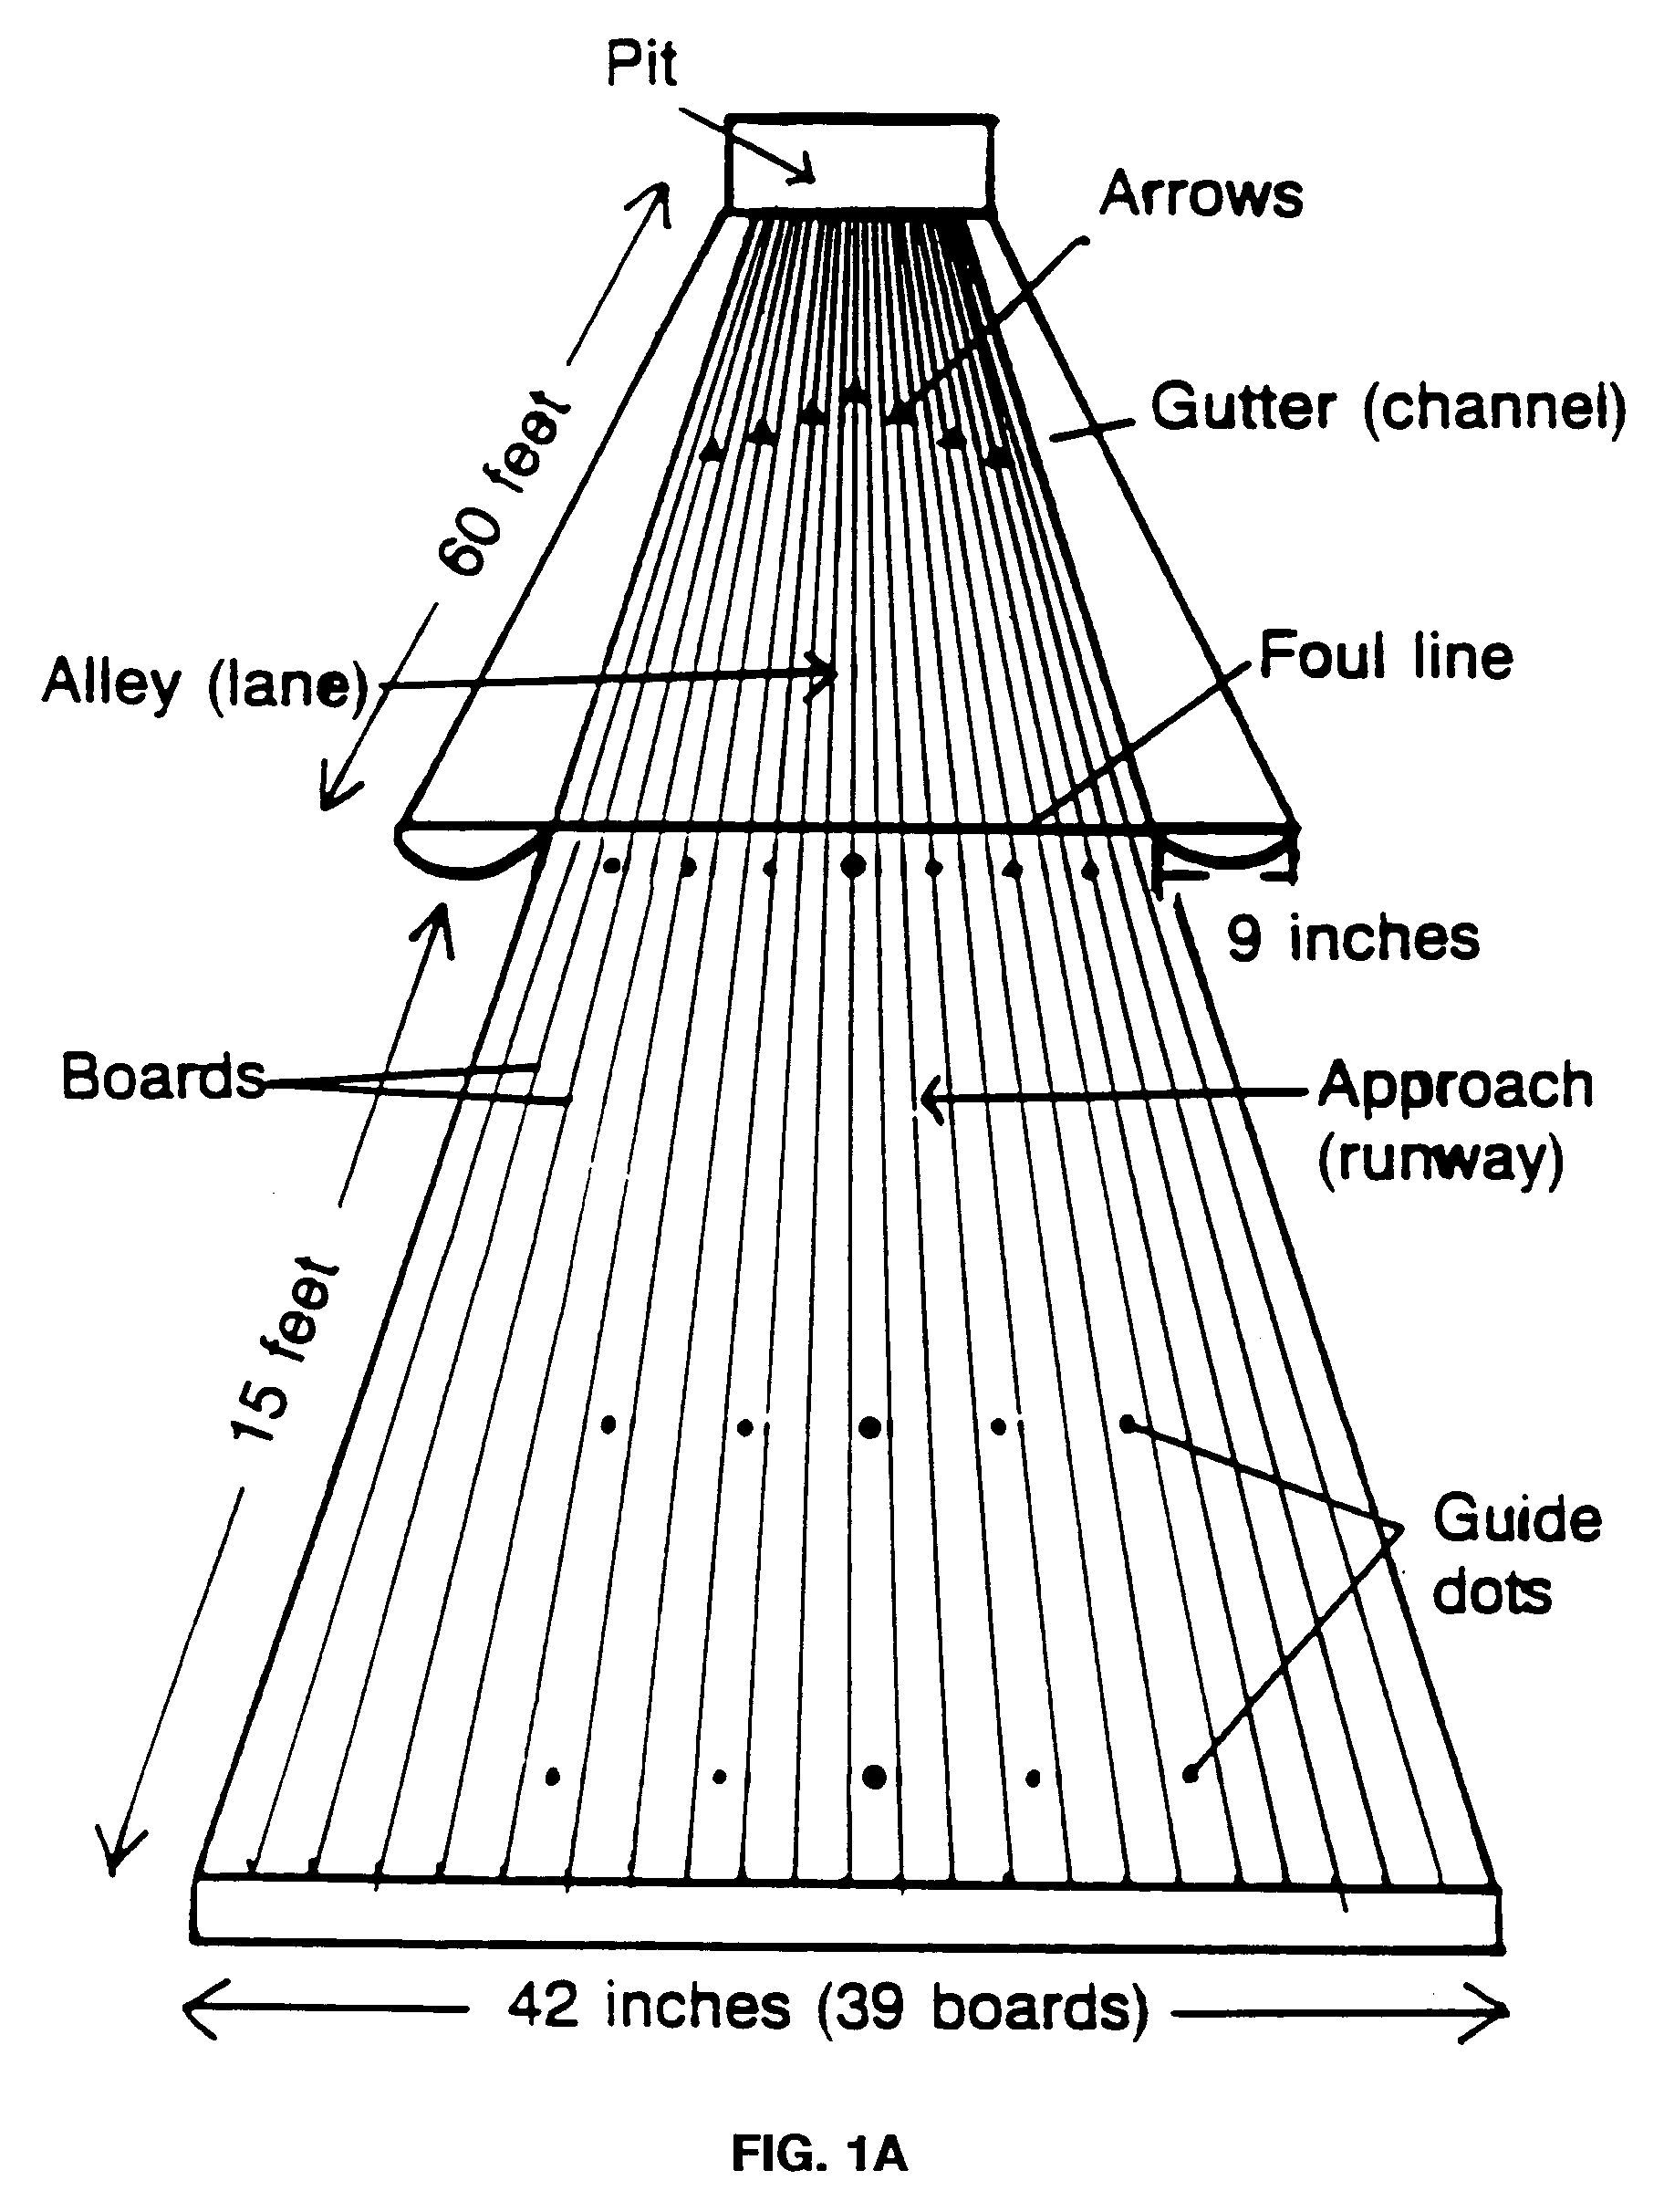 Bowling Lane Oil Patterns In Addition Bowling Lane Diagram